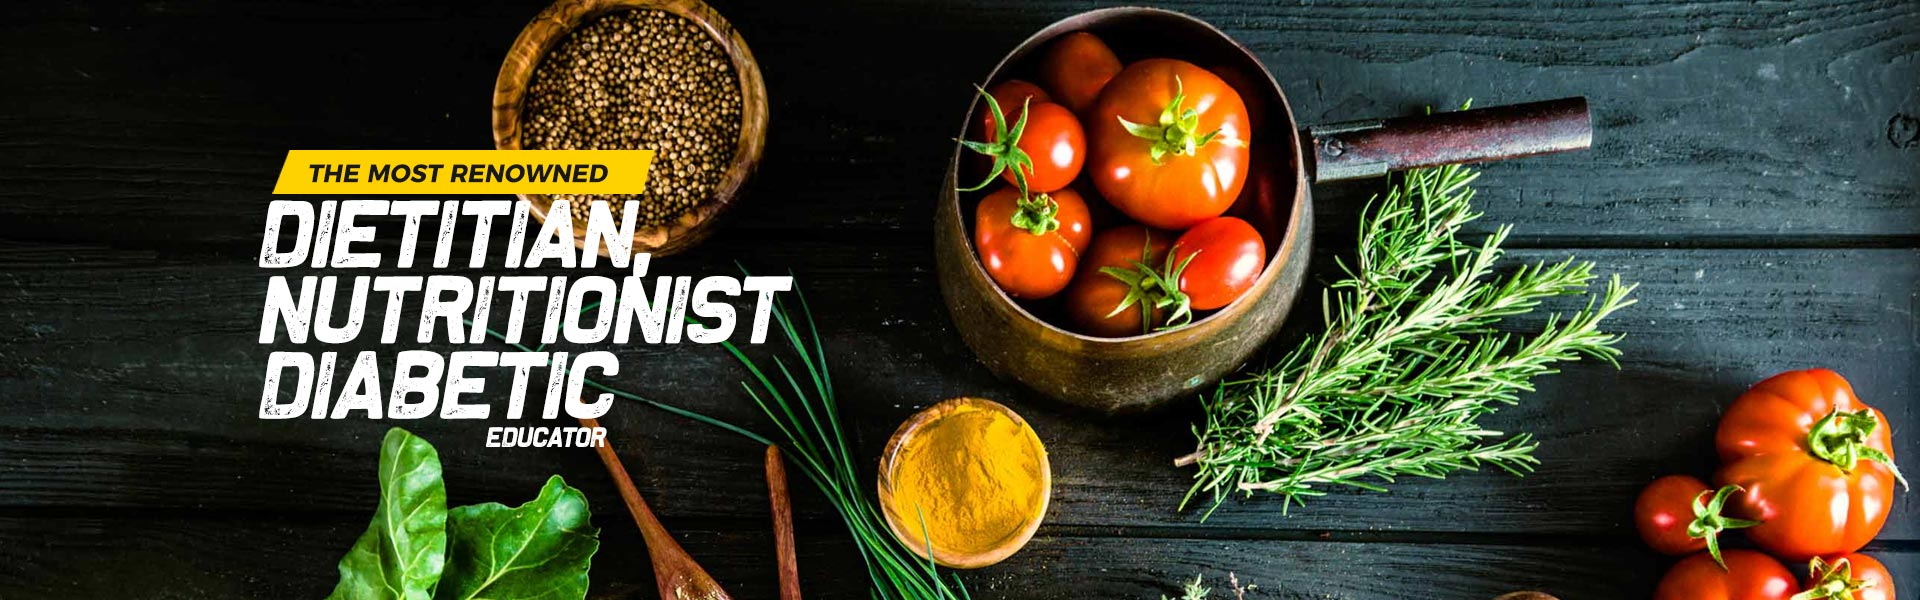 Komal Patel Nutritionist in Ahmedabad Best Dietician in Ahmedabad Online Diet Plans Ahmedabad Famous Weight Loss Dietitian Online Weight Loss Plans Online Weight Gain Plans Nutrition expert in Ahmedabad